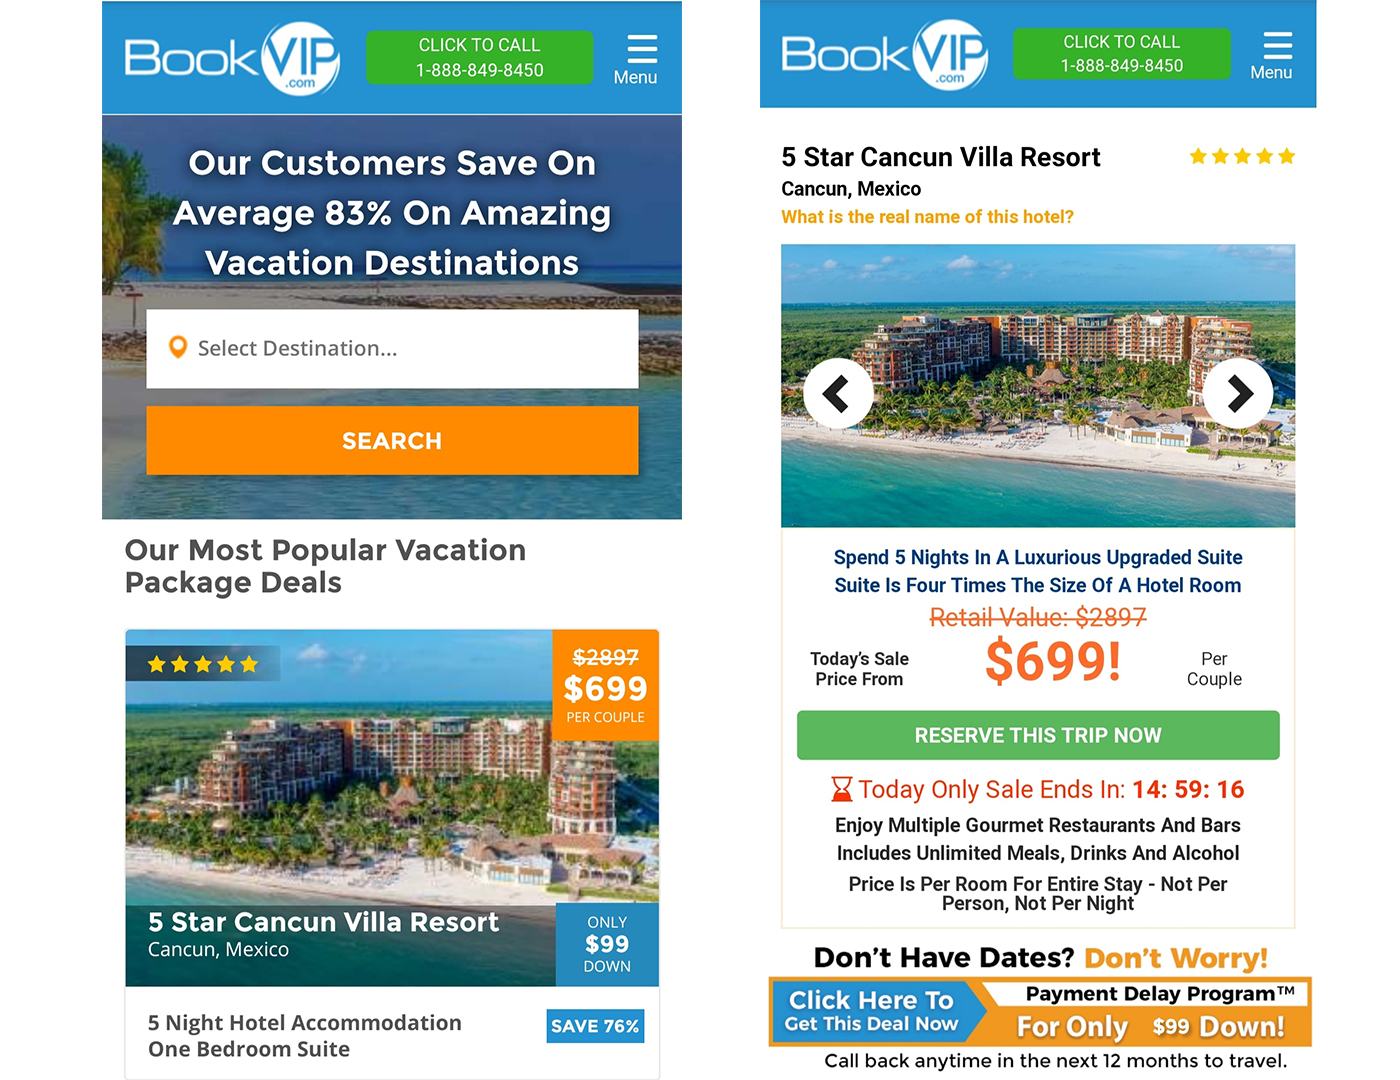 Resorts de lujo con descuento Black Friday en BookVip.com